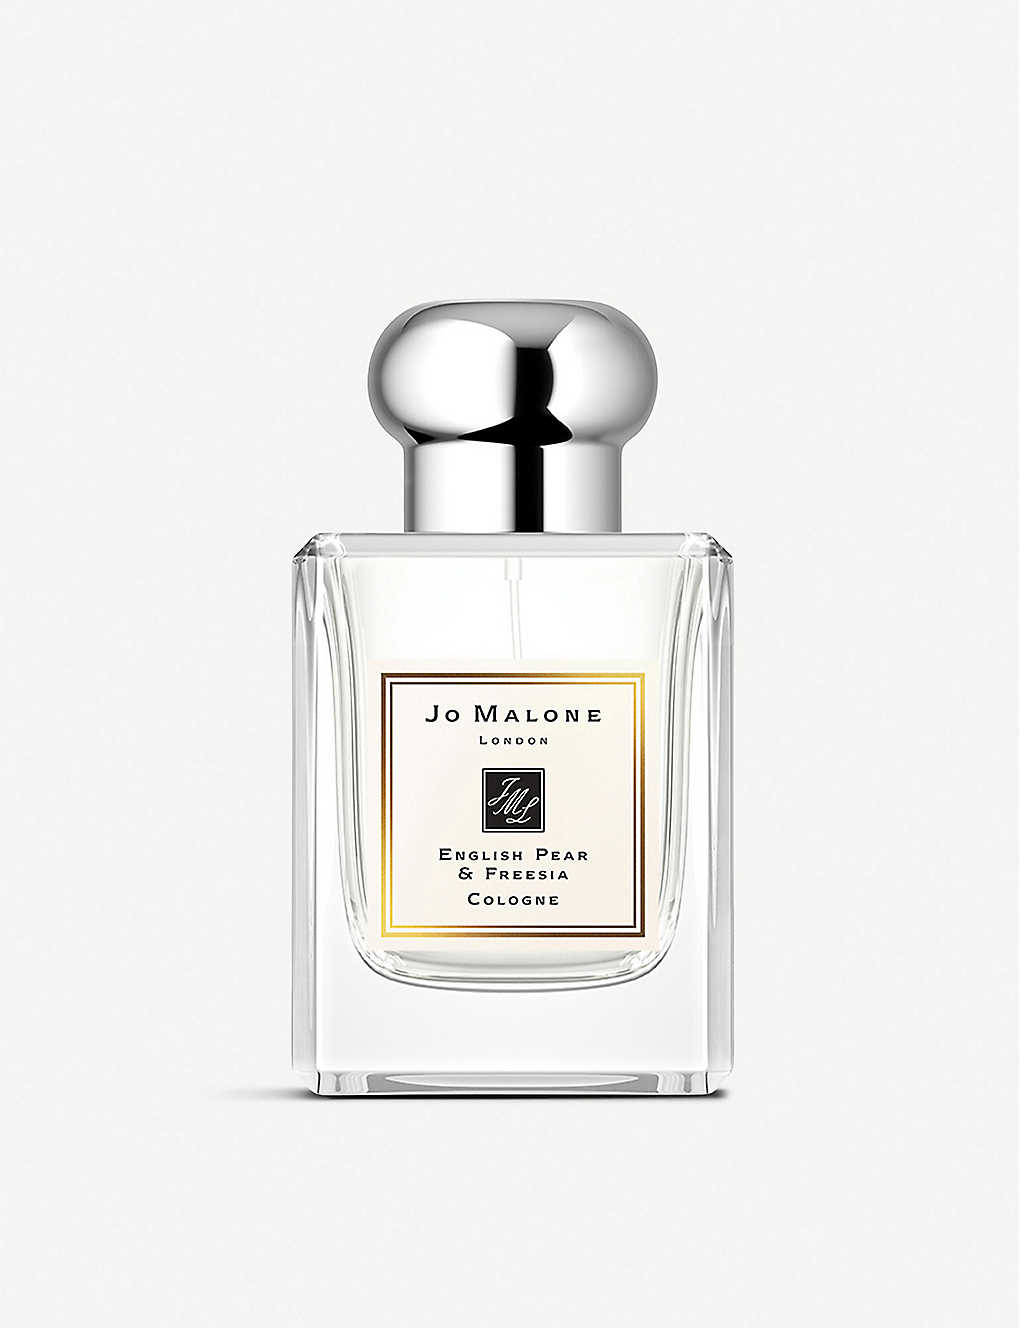 JO MALONE LONDON: English Pear and Freesia Cologne 50ml